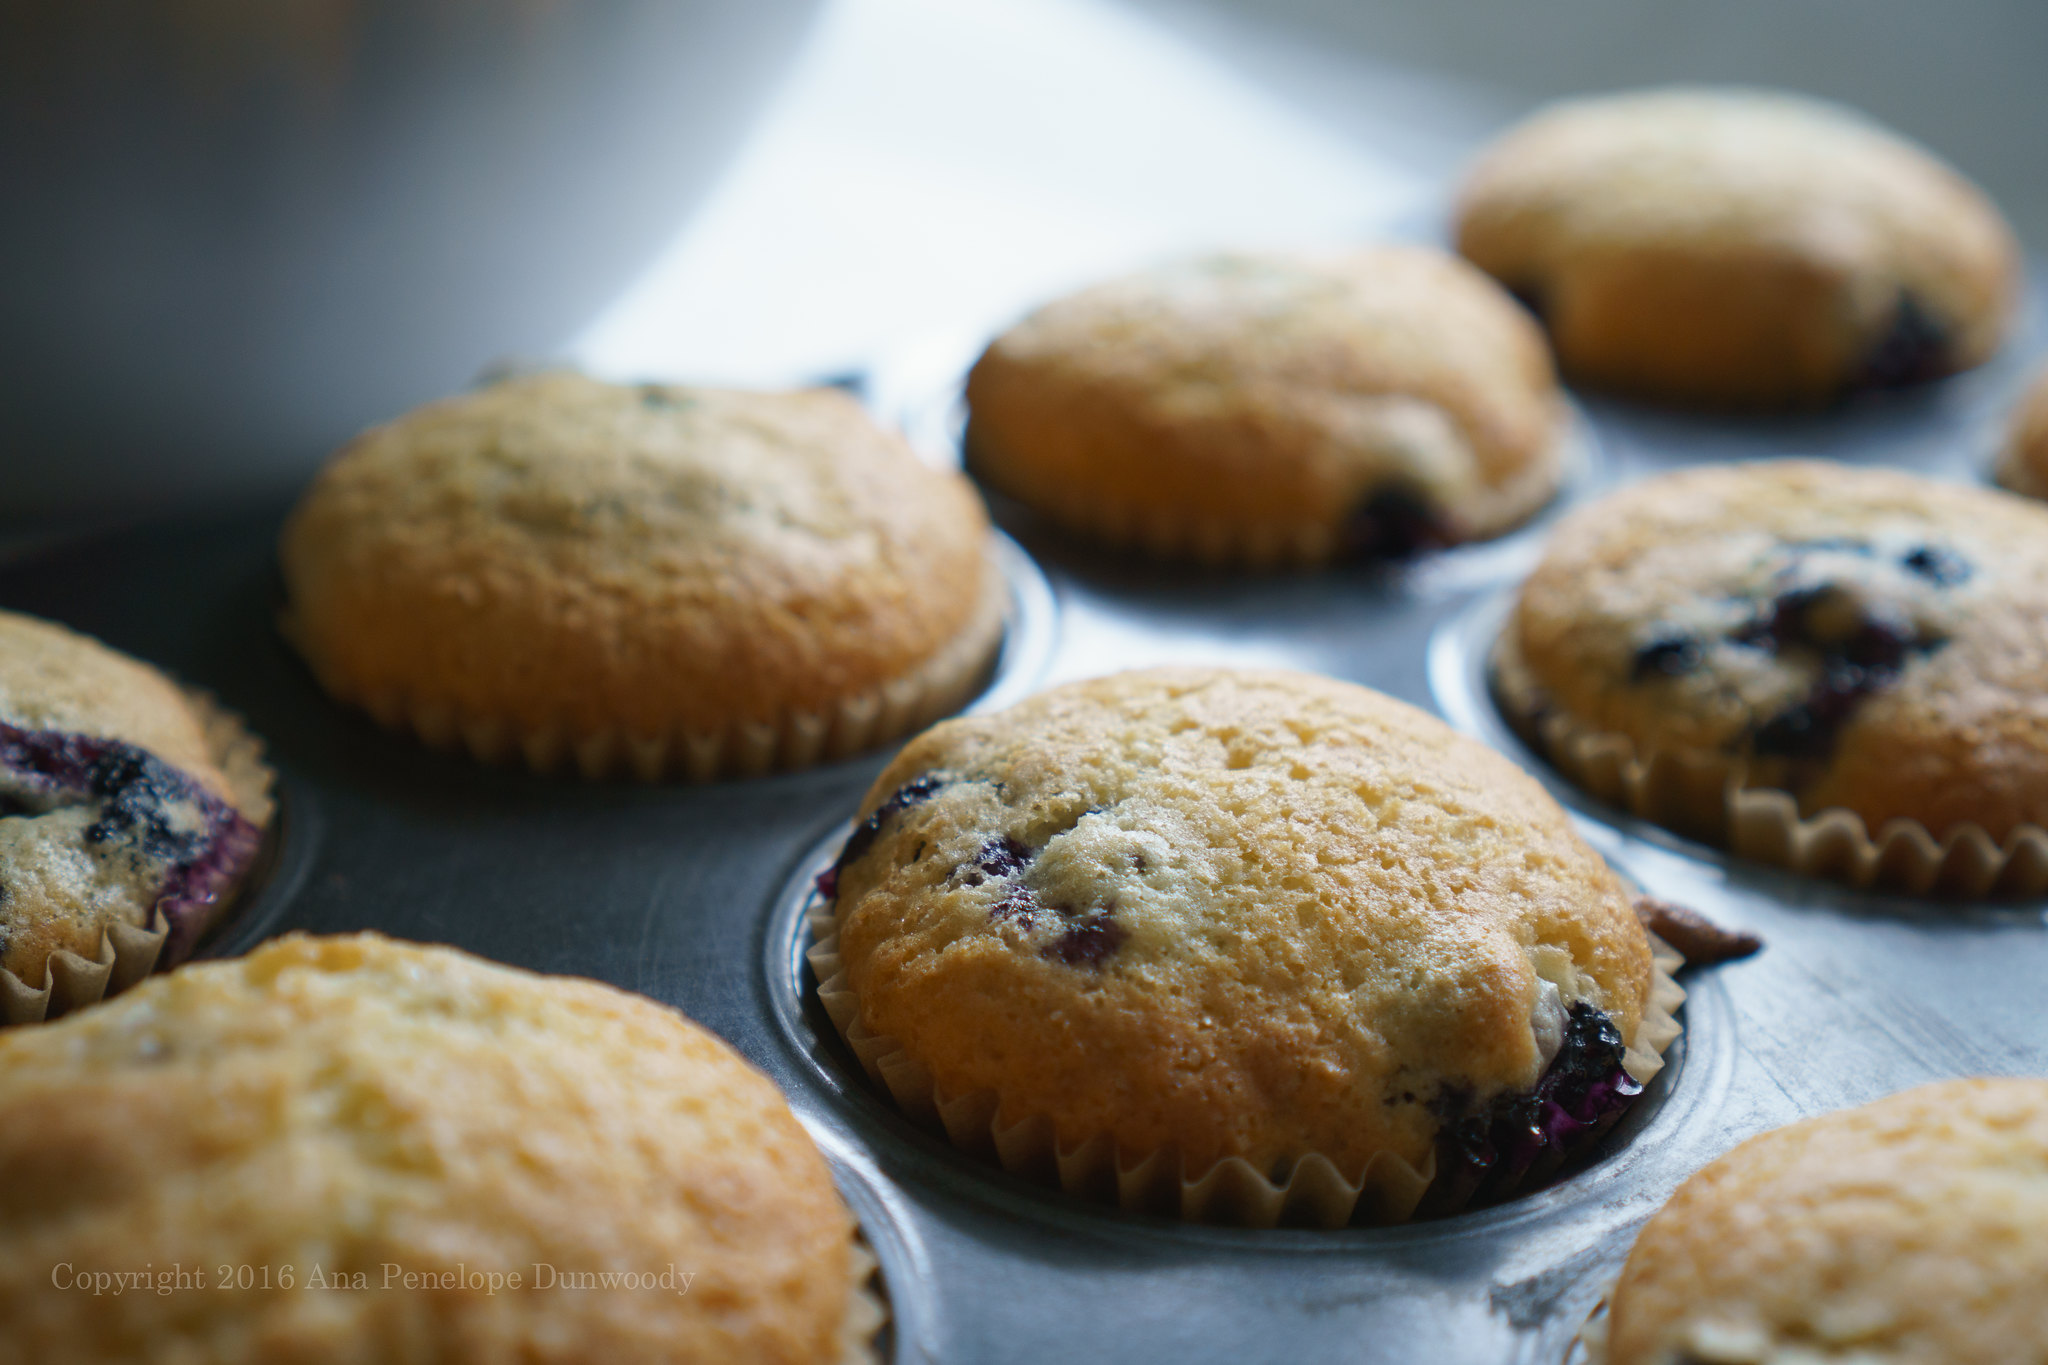 Baked Blueberry Muffins detail